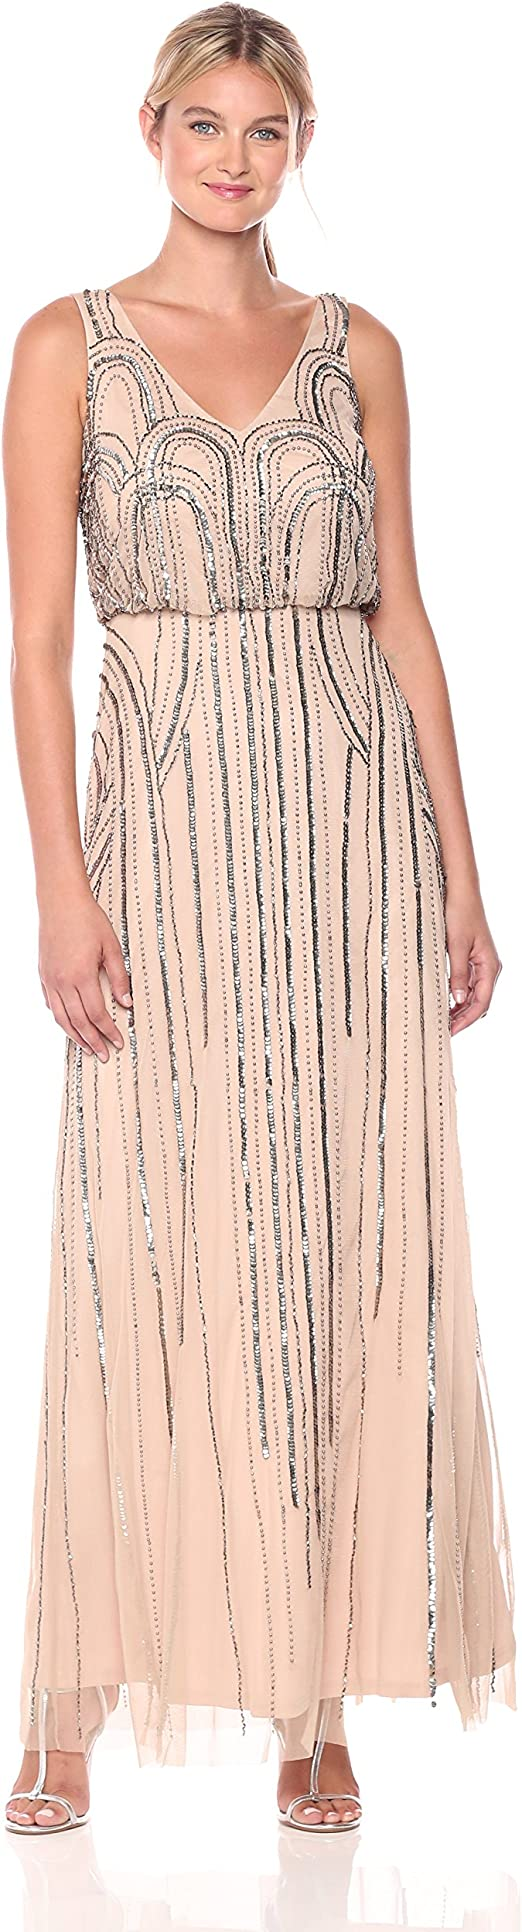 Adrianna Papell Womens Long Beaded VNeck Dress With Cap